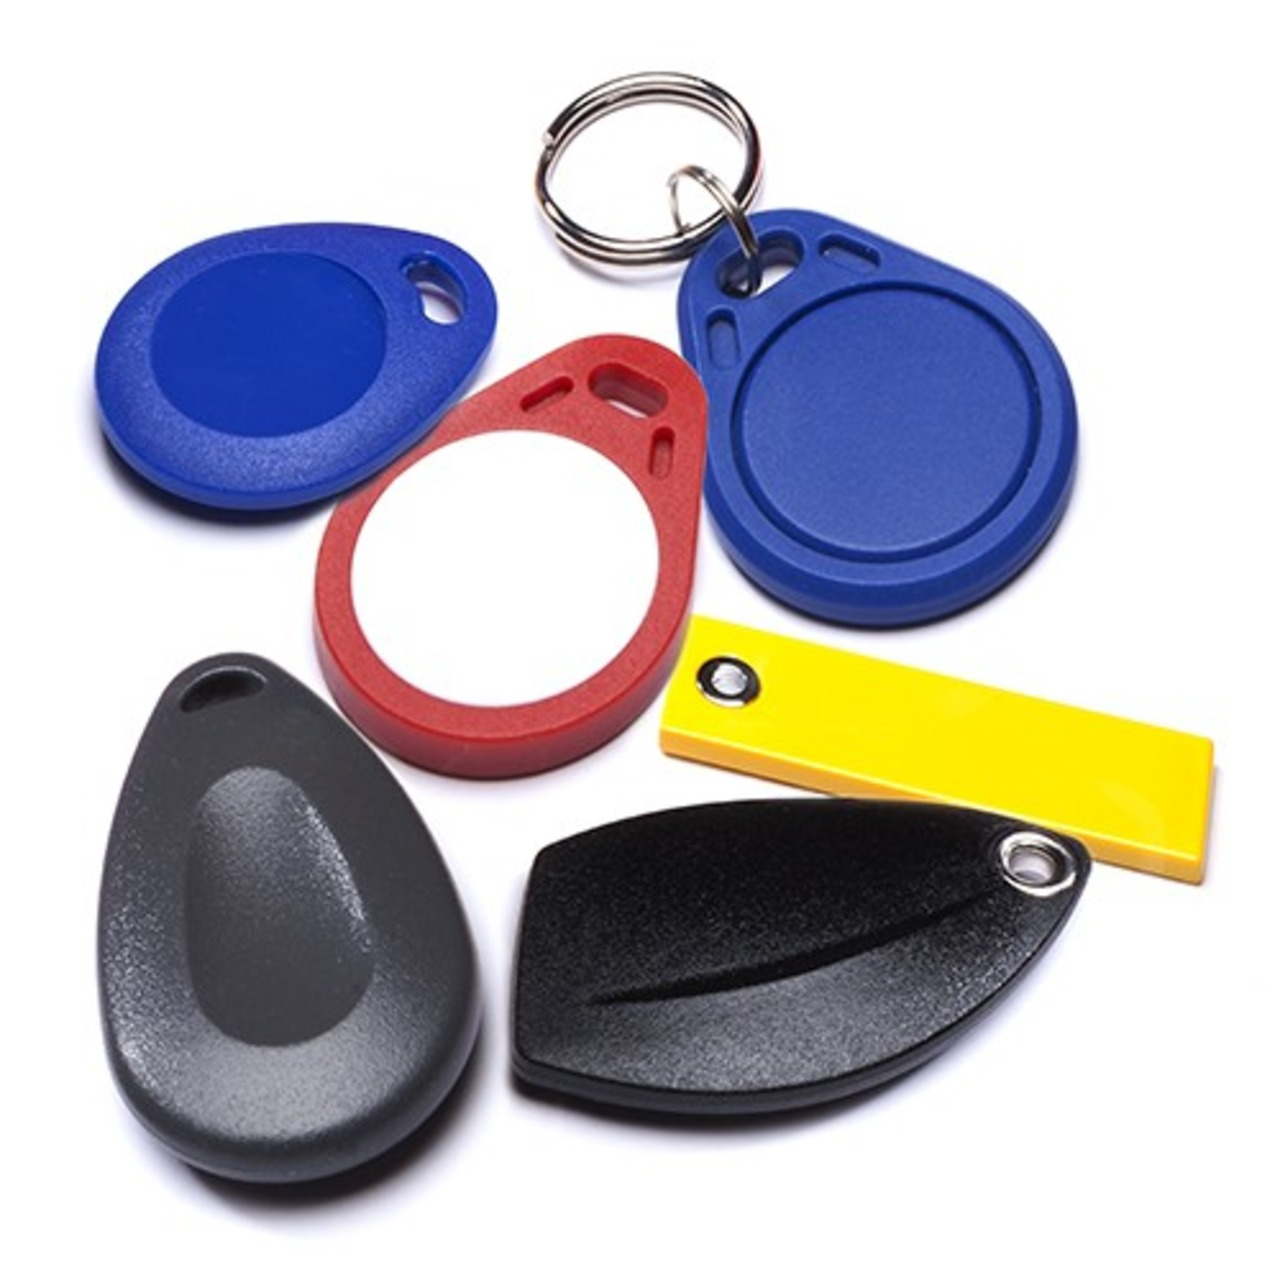 NFC Key Fob Sample Pack